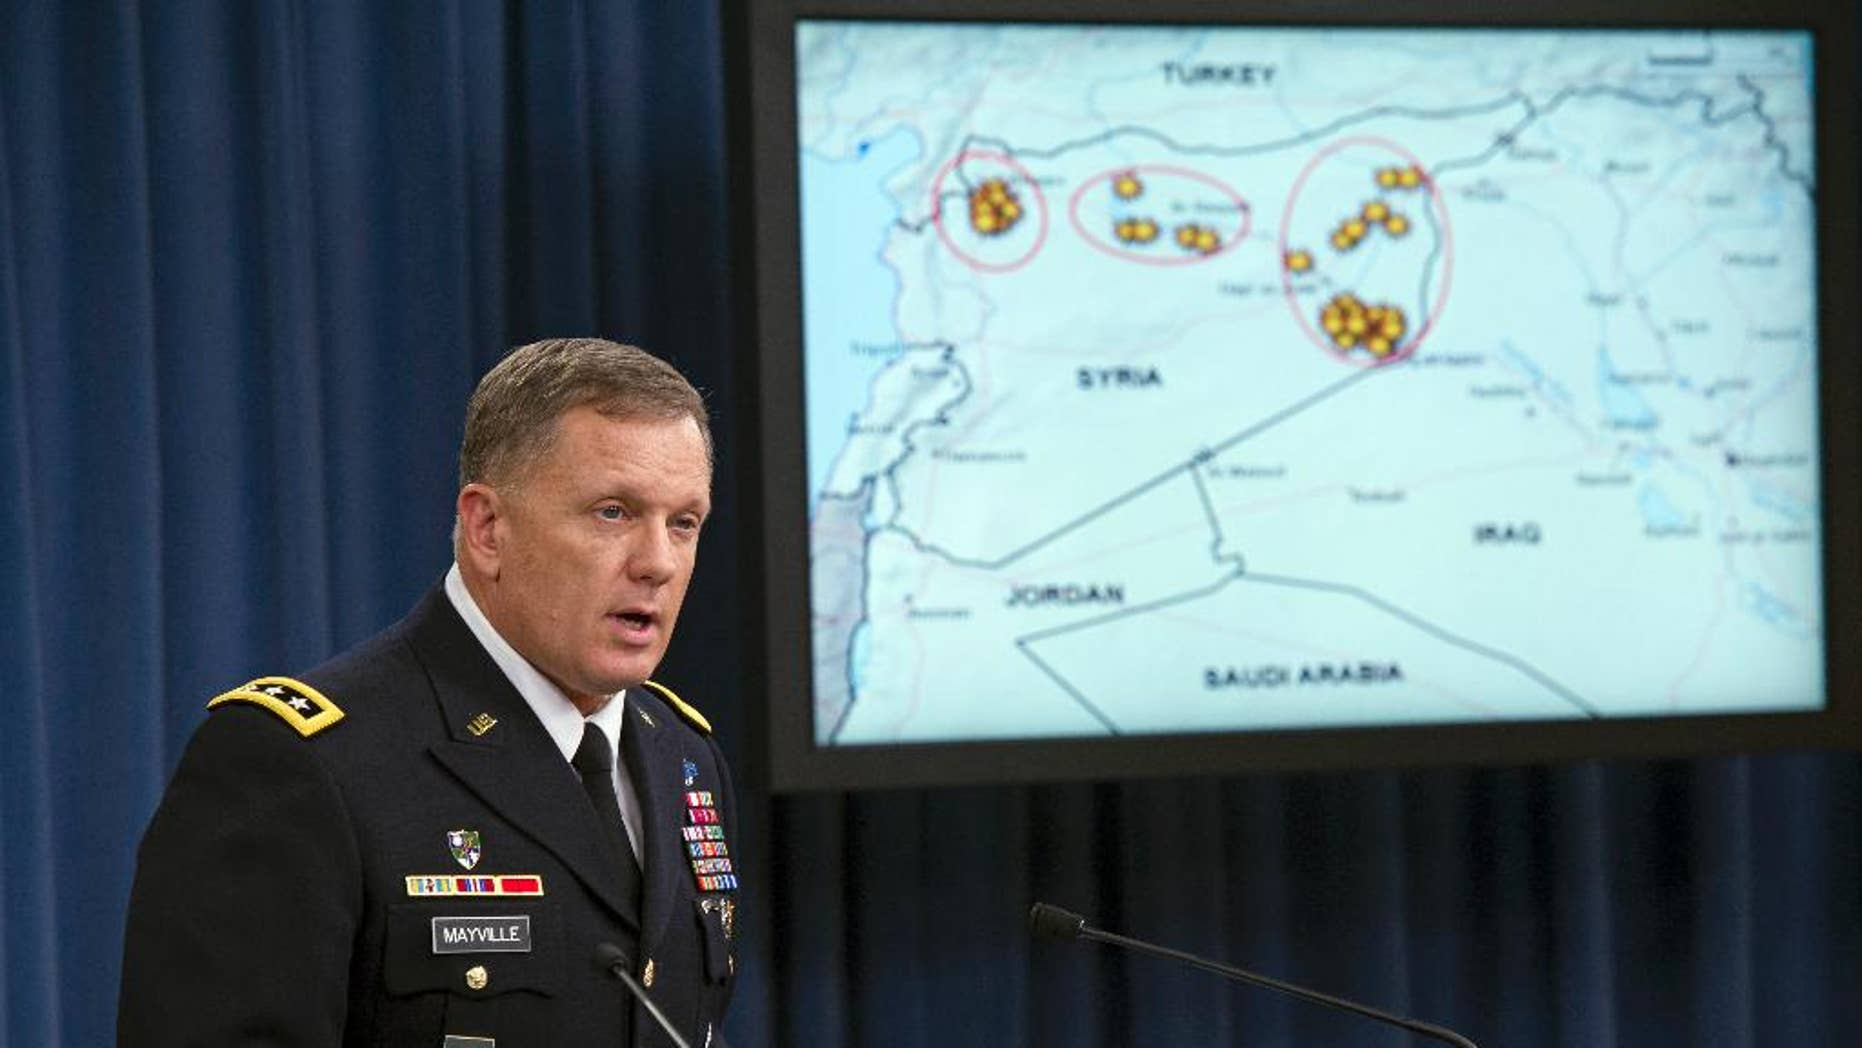 FILE - In this Tuesday, Sept. 23, 2014, file photo,  Army Lt. Gen. William Mayville, Jr., Director of Operations J3, speaks about the operations in Syria during a news conference at the Pentagon. According to current and former U.S. officials, the Pentagon is grappling with significant intelligence gaps as it bombs Iraq and Syria, and it is operating under less restrictive targeting rules than those President Barack Obama imposed on the CIA drone campaign in Pakistan and Yemen. (AP Photo/Cliff Owen, File)